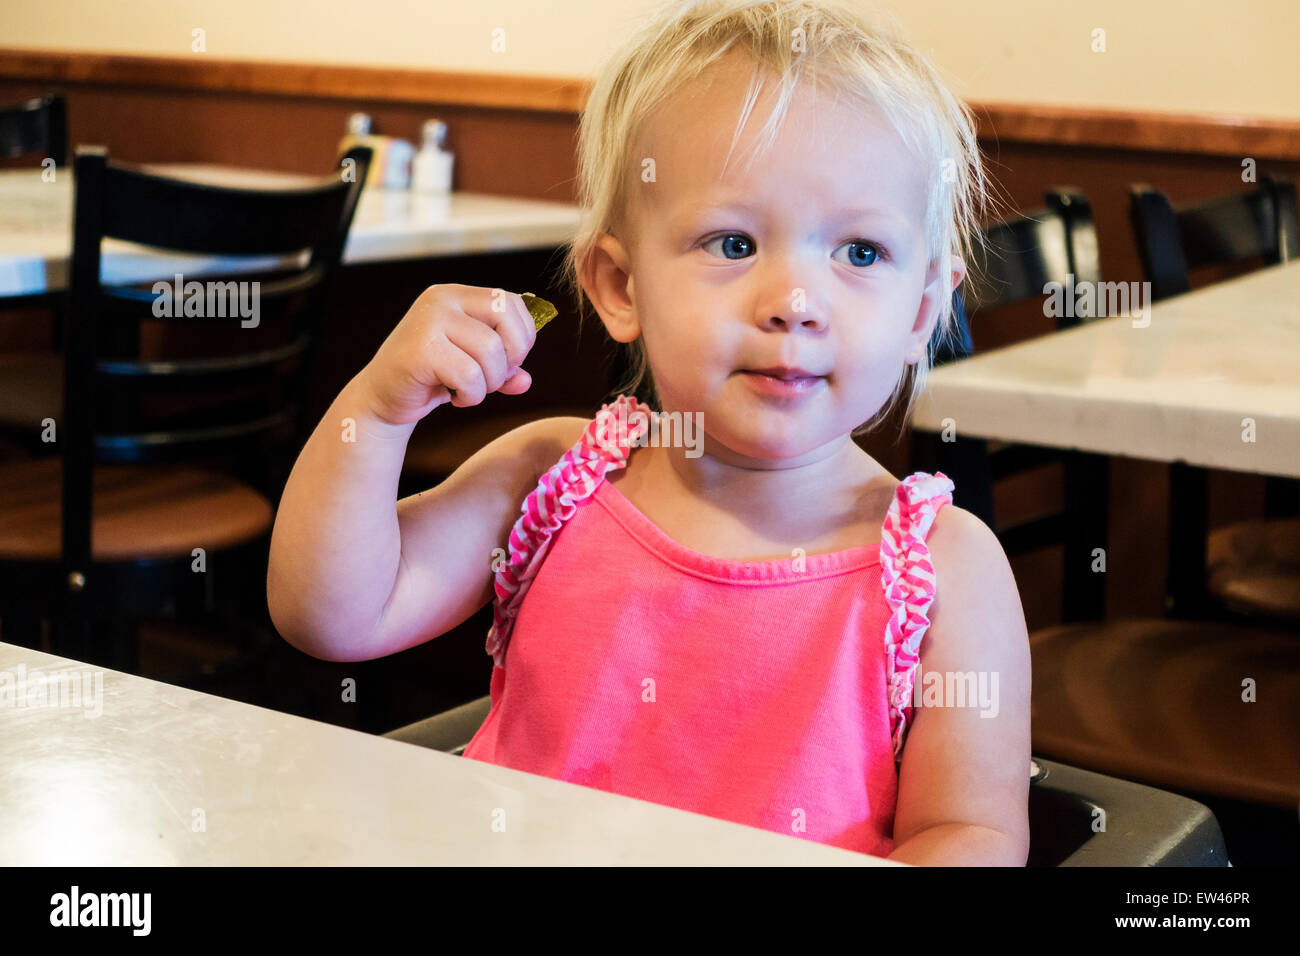 An 18 month old blonde Caucasian baby girl enjoys a sour pickle at a restaurant. USA. - Stock Image